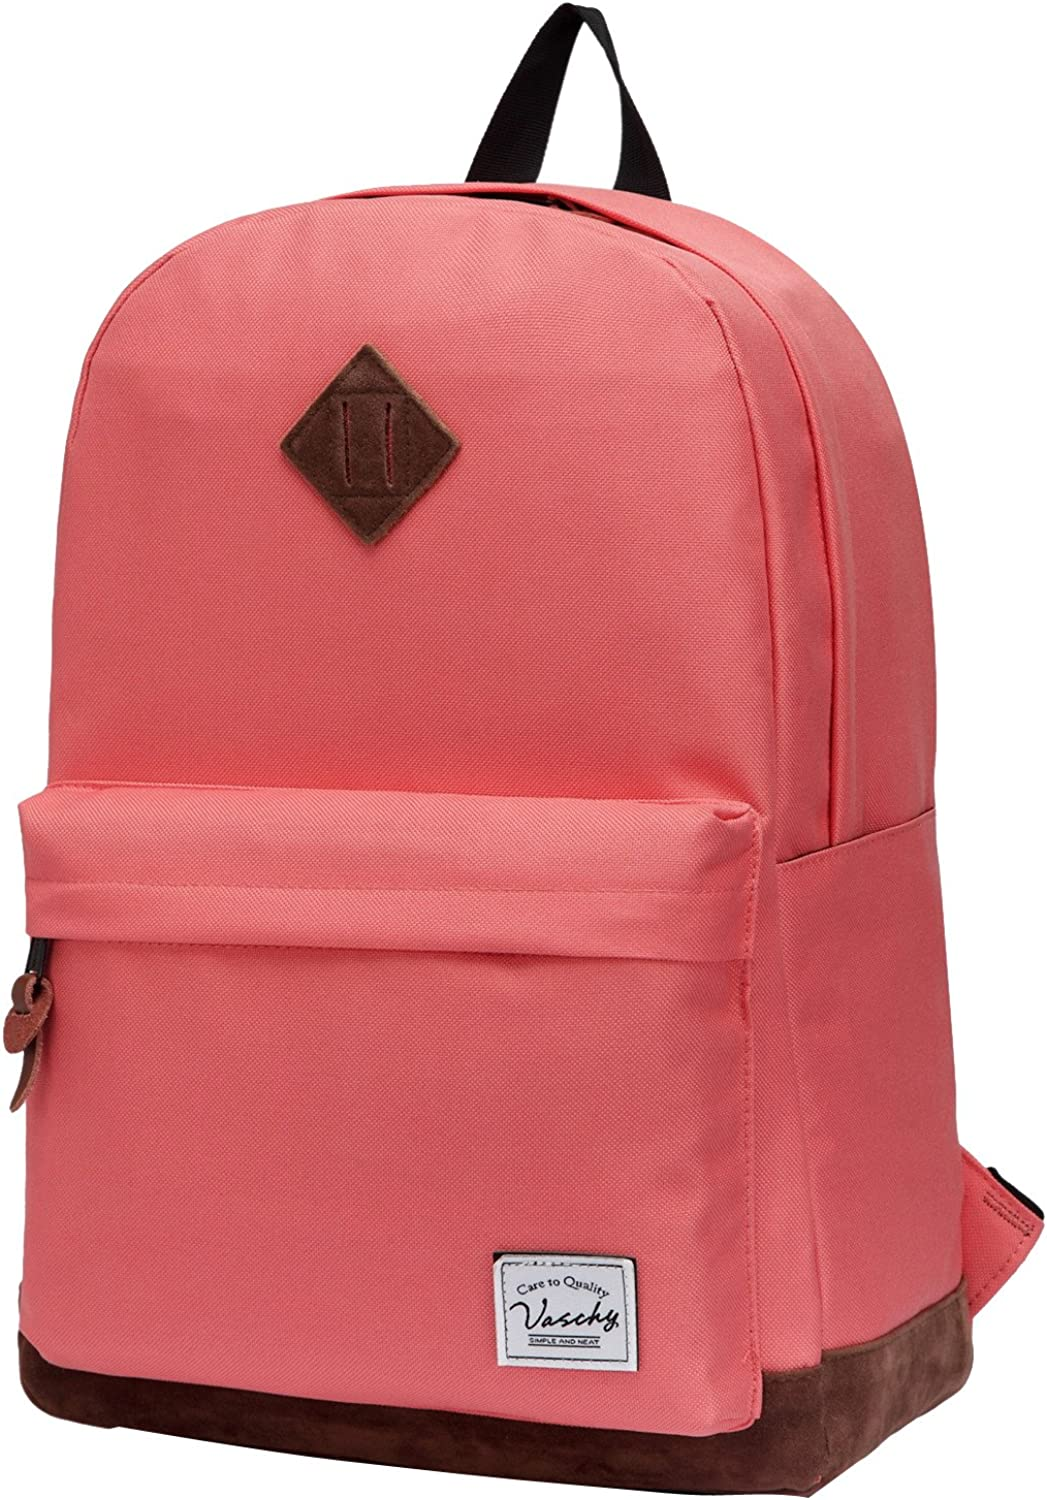 (Watermelon Red) - Vaschy Classic Backpack for Women Lightweight School Backpack for Girls Water Resistant Campus School Rucksack Travel Backpack Fits 36cm Laptop (Watermelon Red)